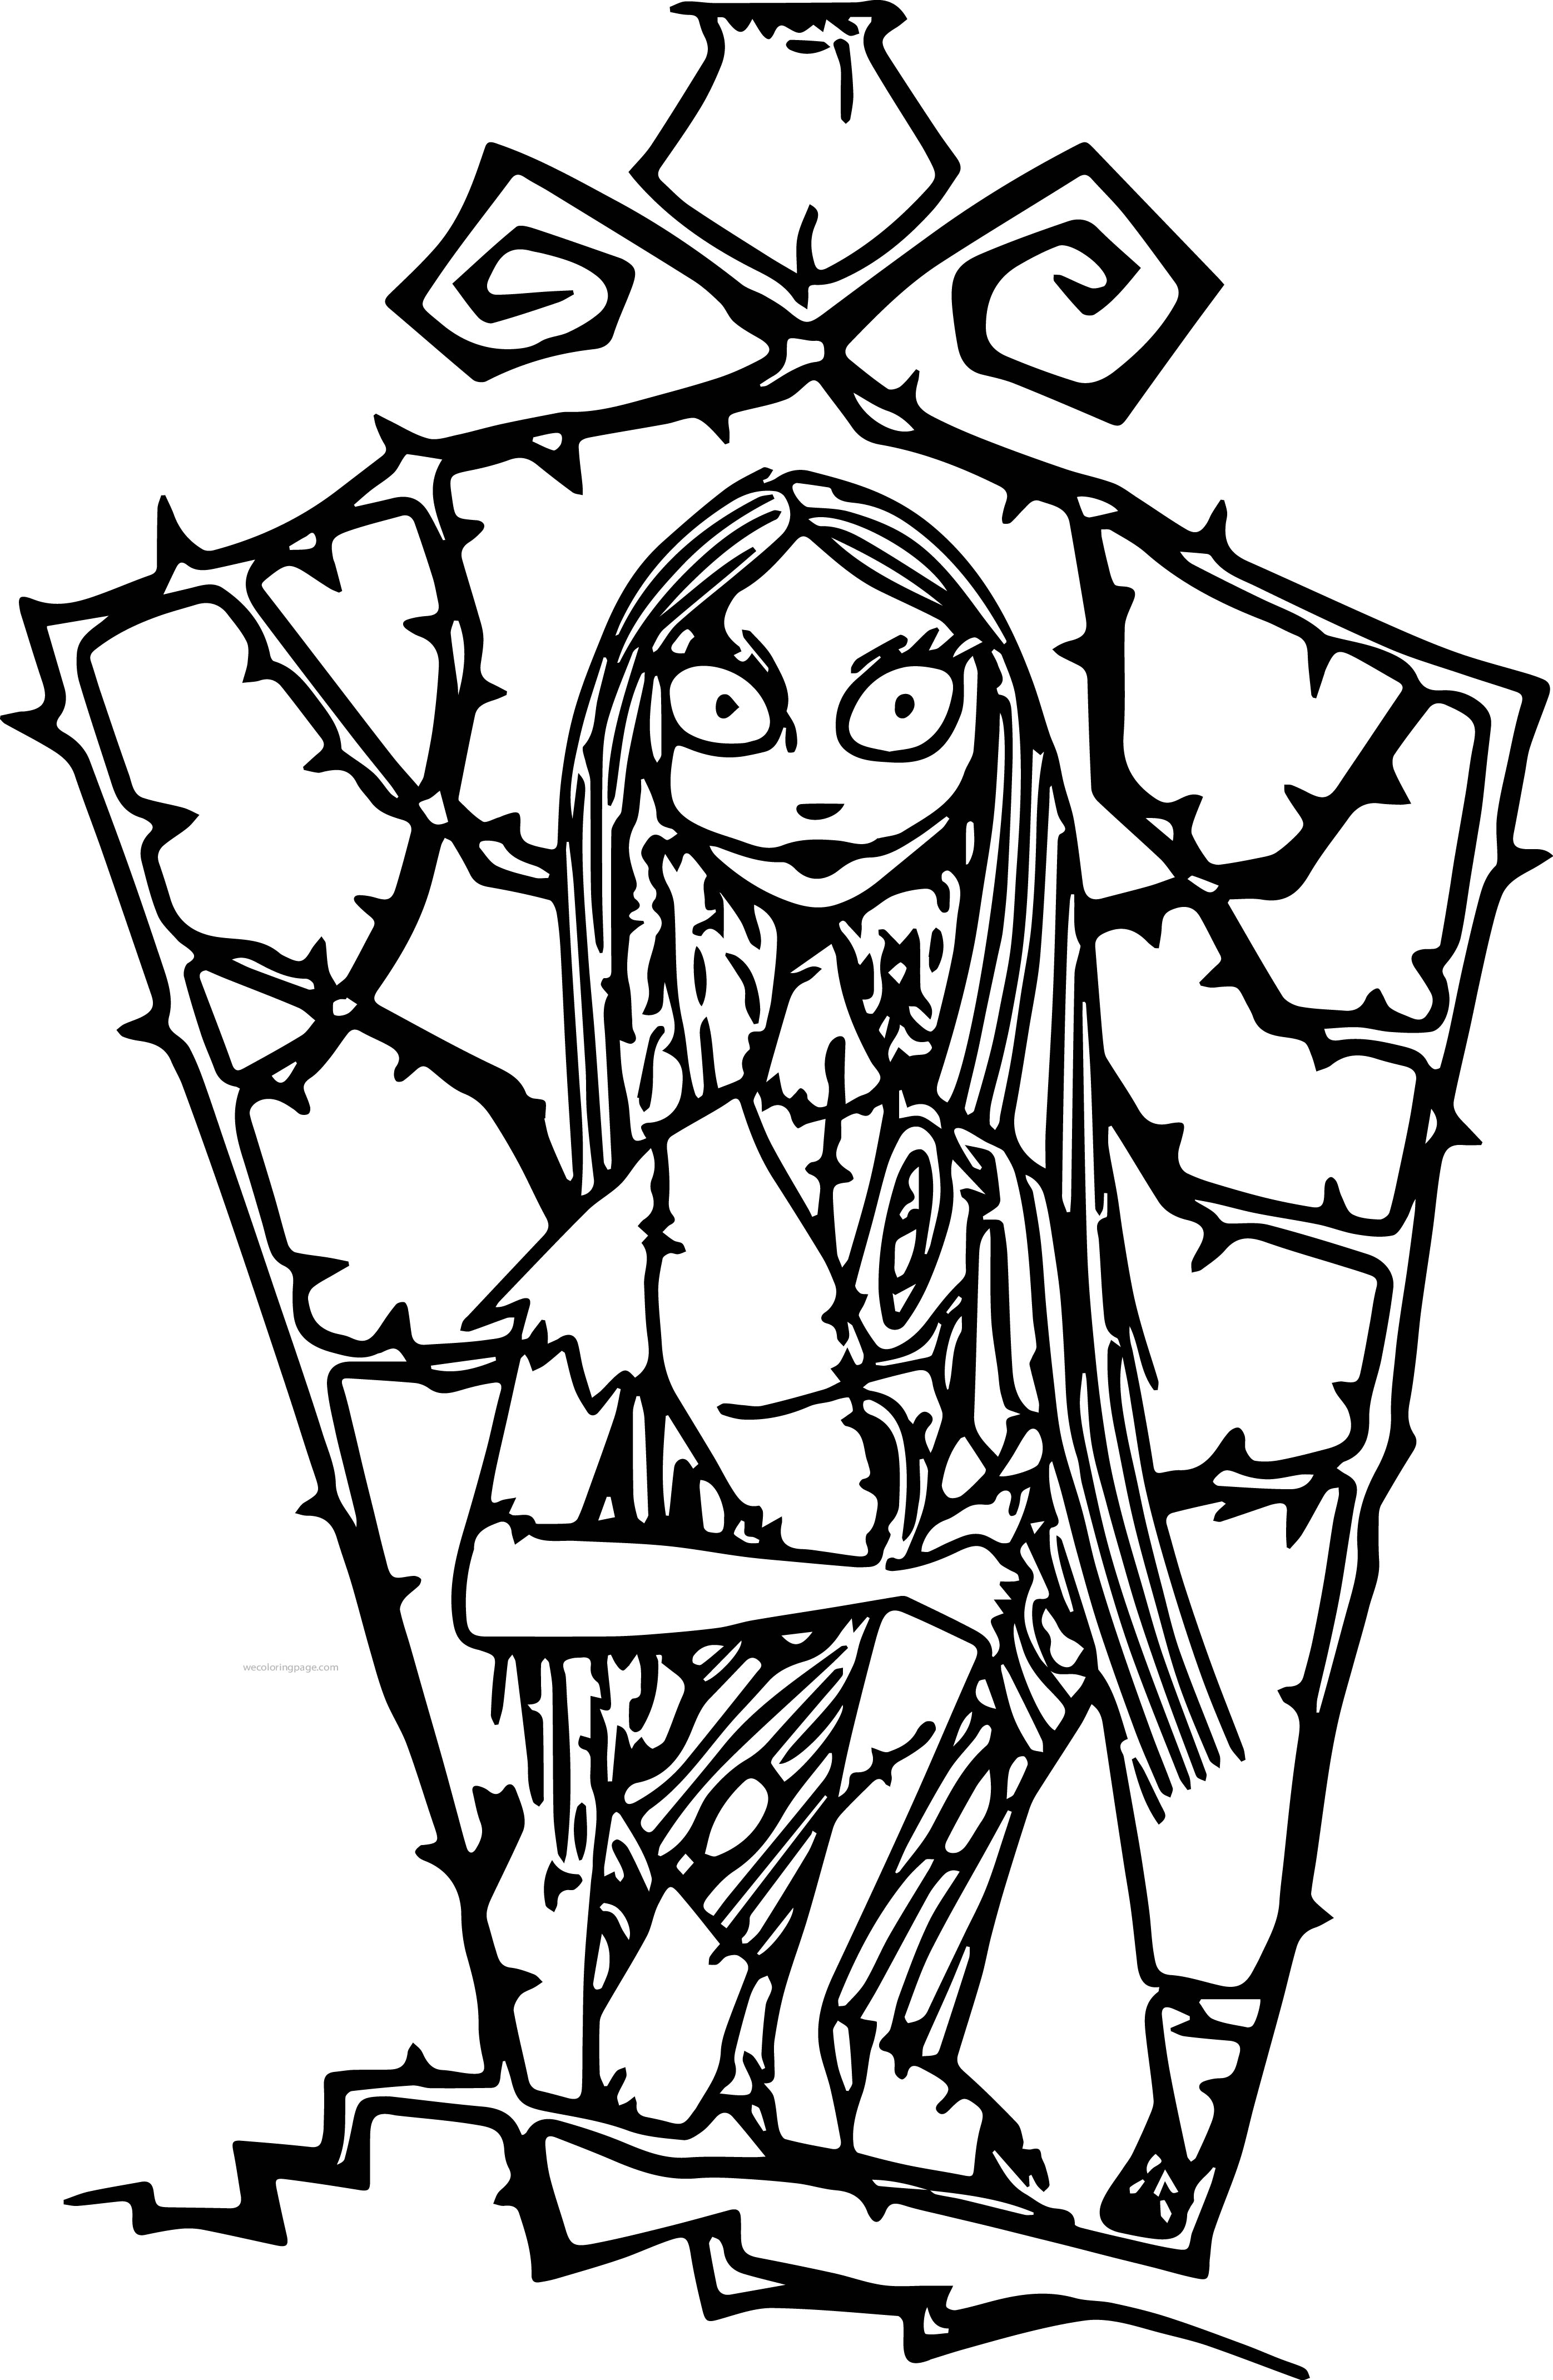 Nightmare Before Christmas Coloring Pages For Adults : nightmare, before, christmas, coloring, pages, adults, Printable, Nightmare, Before, Christmas, Coloring, Pages